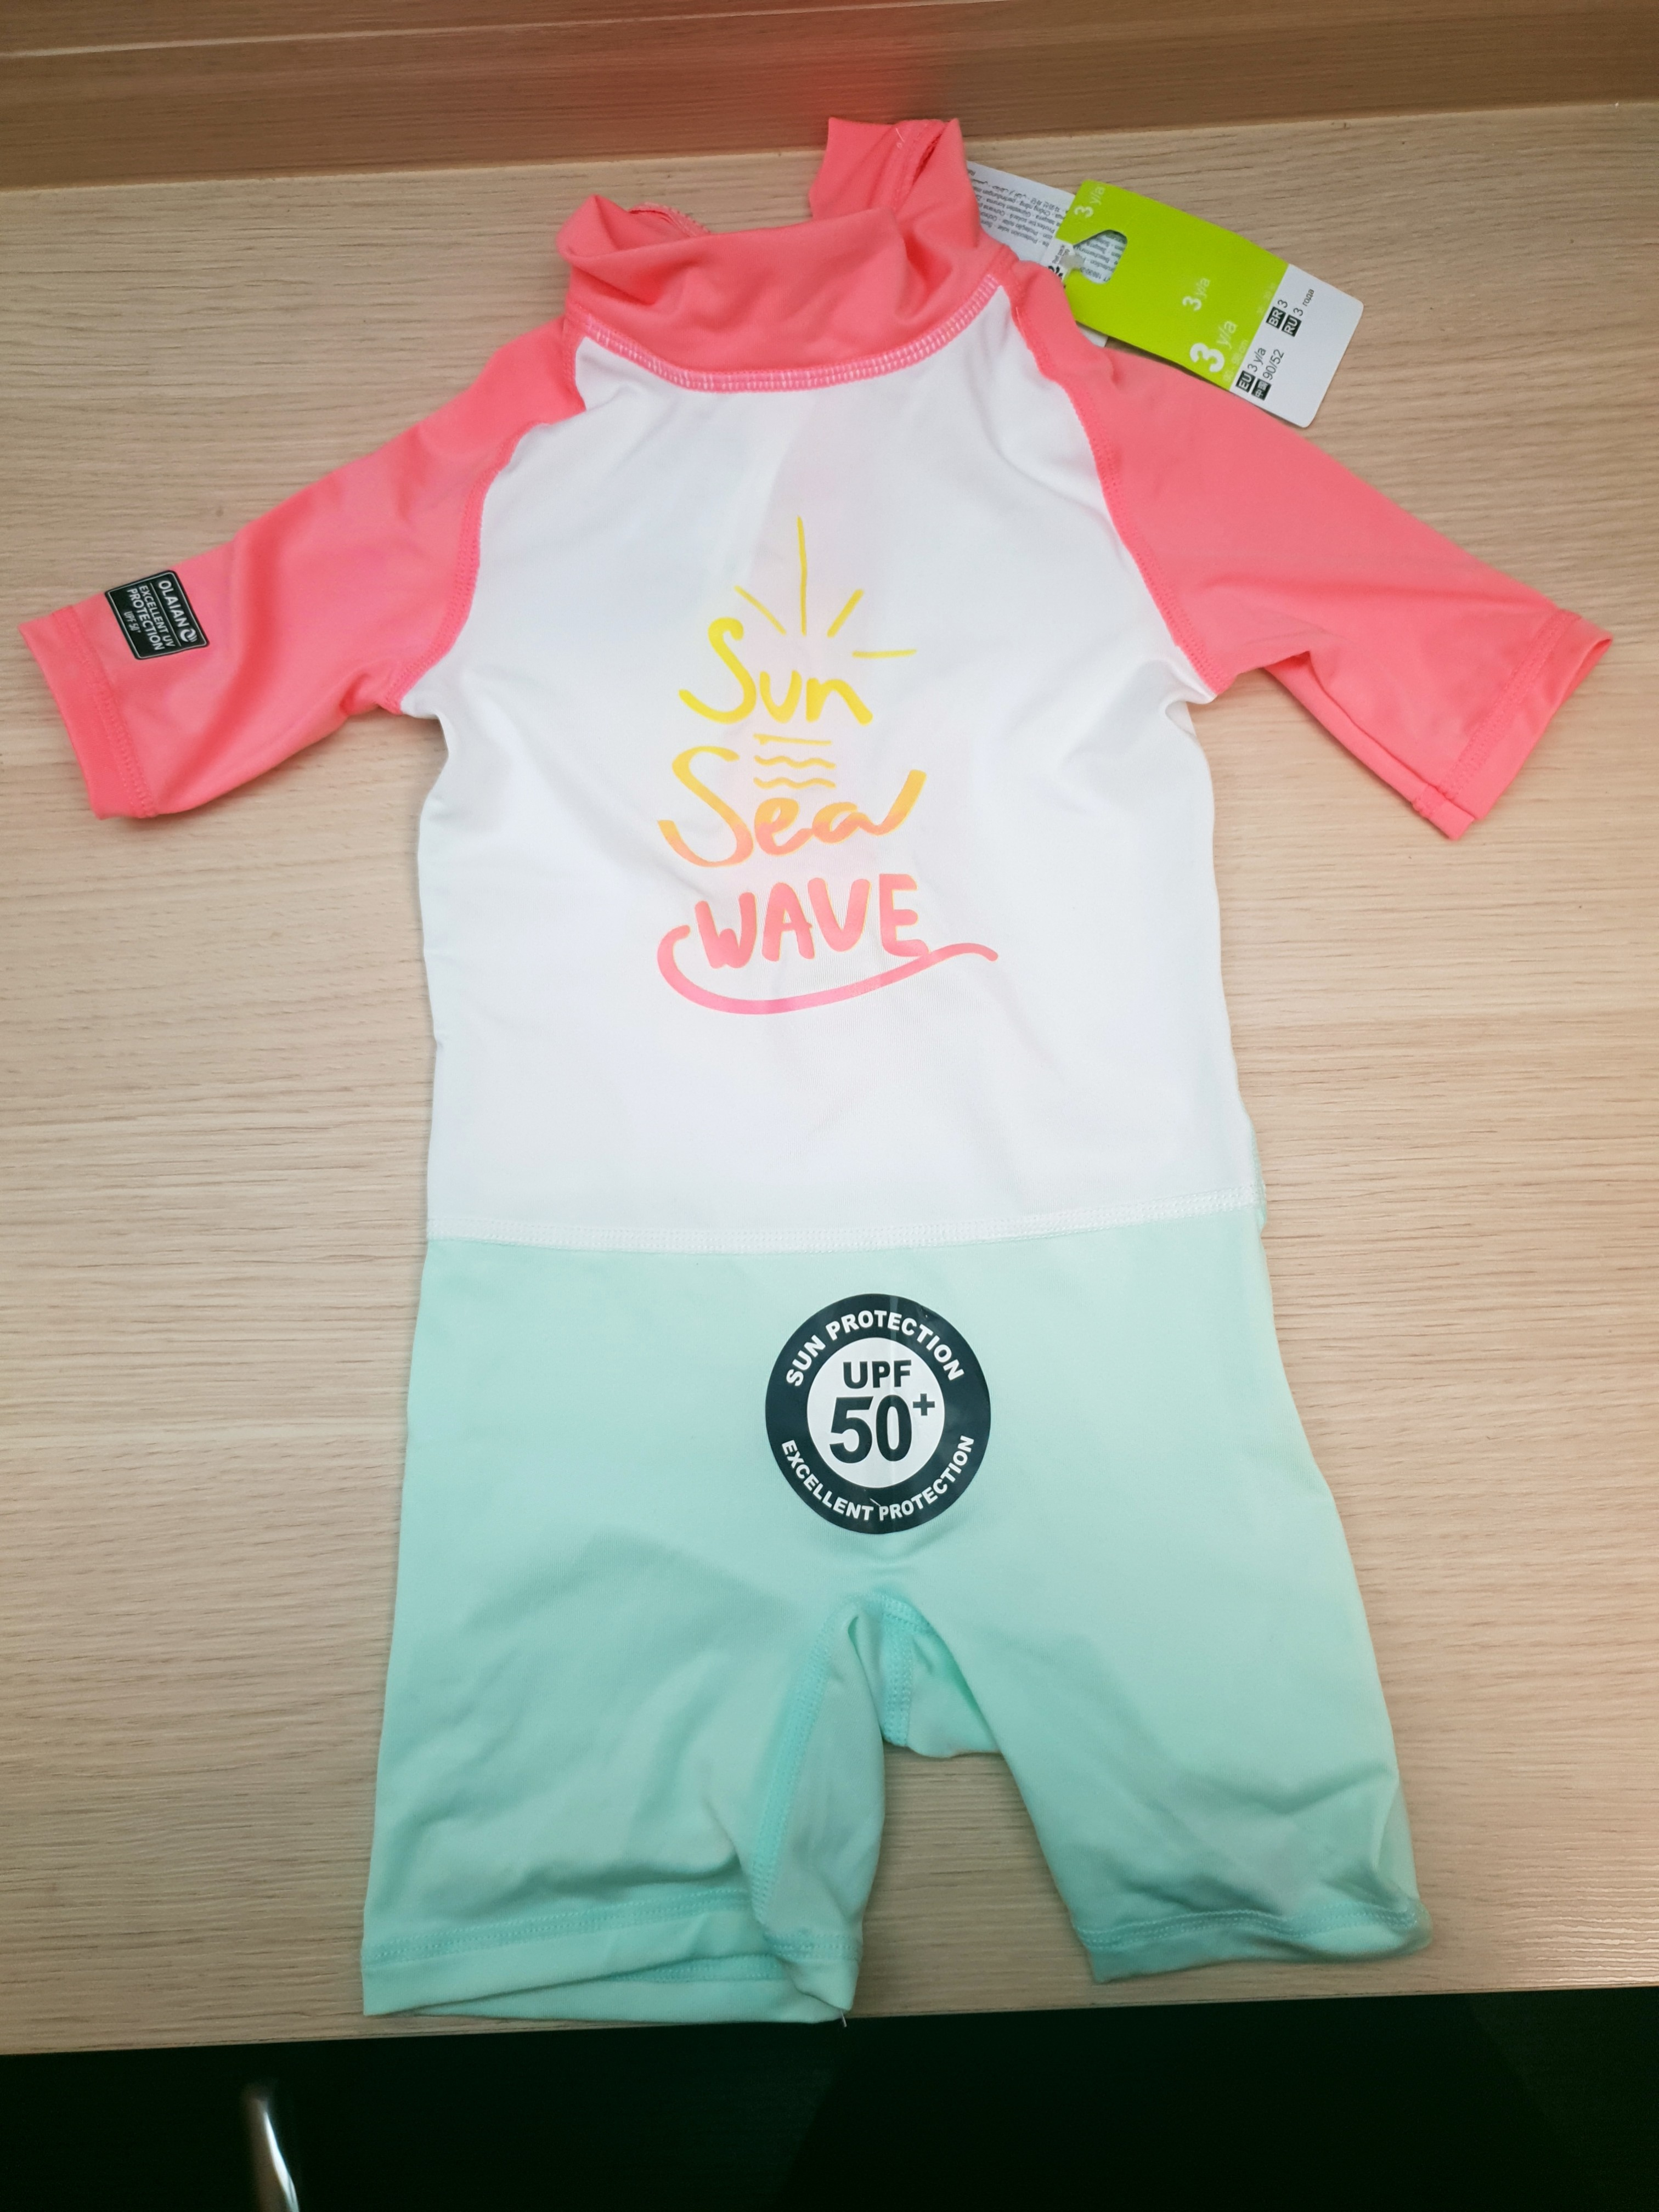 64045e71becae7 BABY SHORT SLEEVE UV PROTECTION SURFING SHORTY T-SHIRT - WHITE PINK, Babies  & Kids, Girls' Apparel, 1 to 3 Years on Carousell